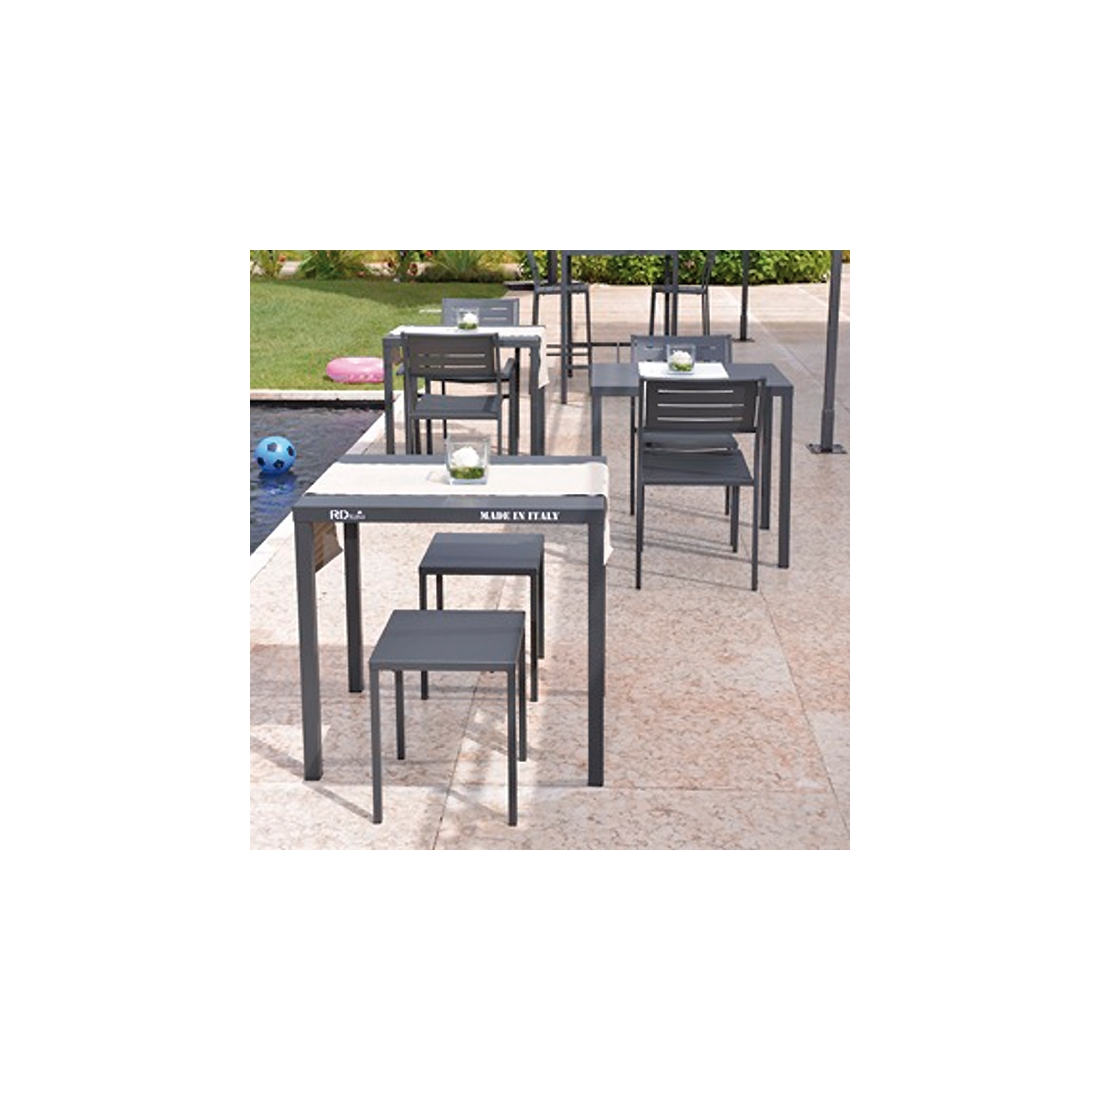 Awesome table de jardin couleur vive photos for Petite table de jardin pvc